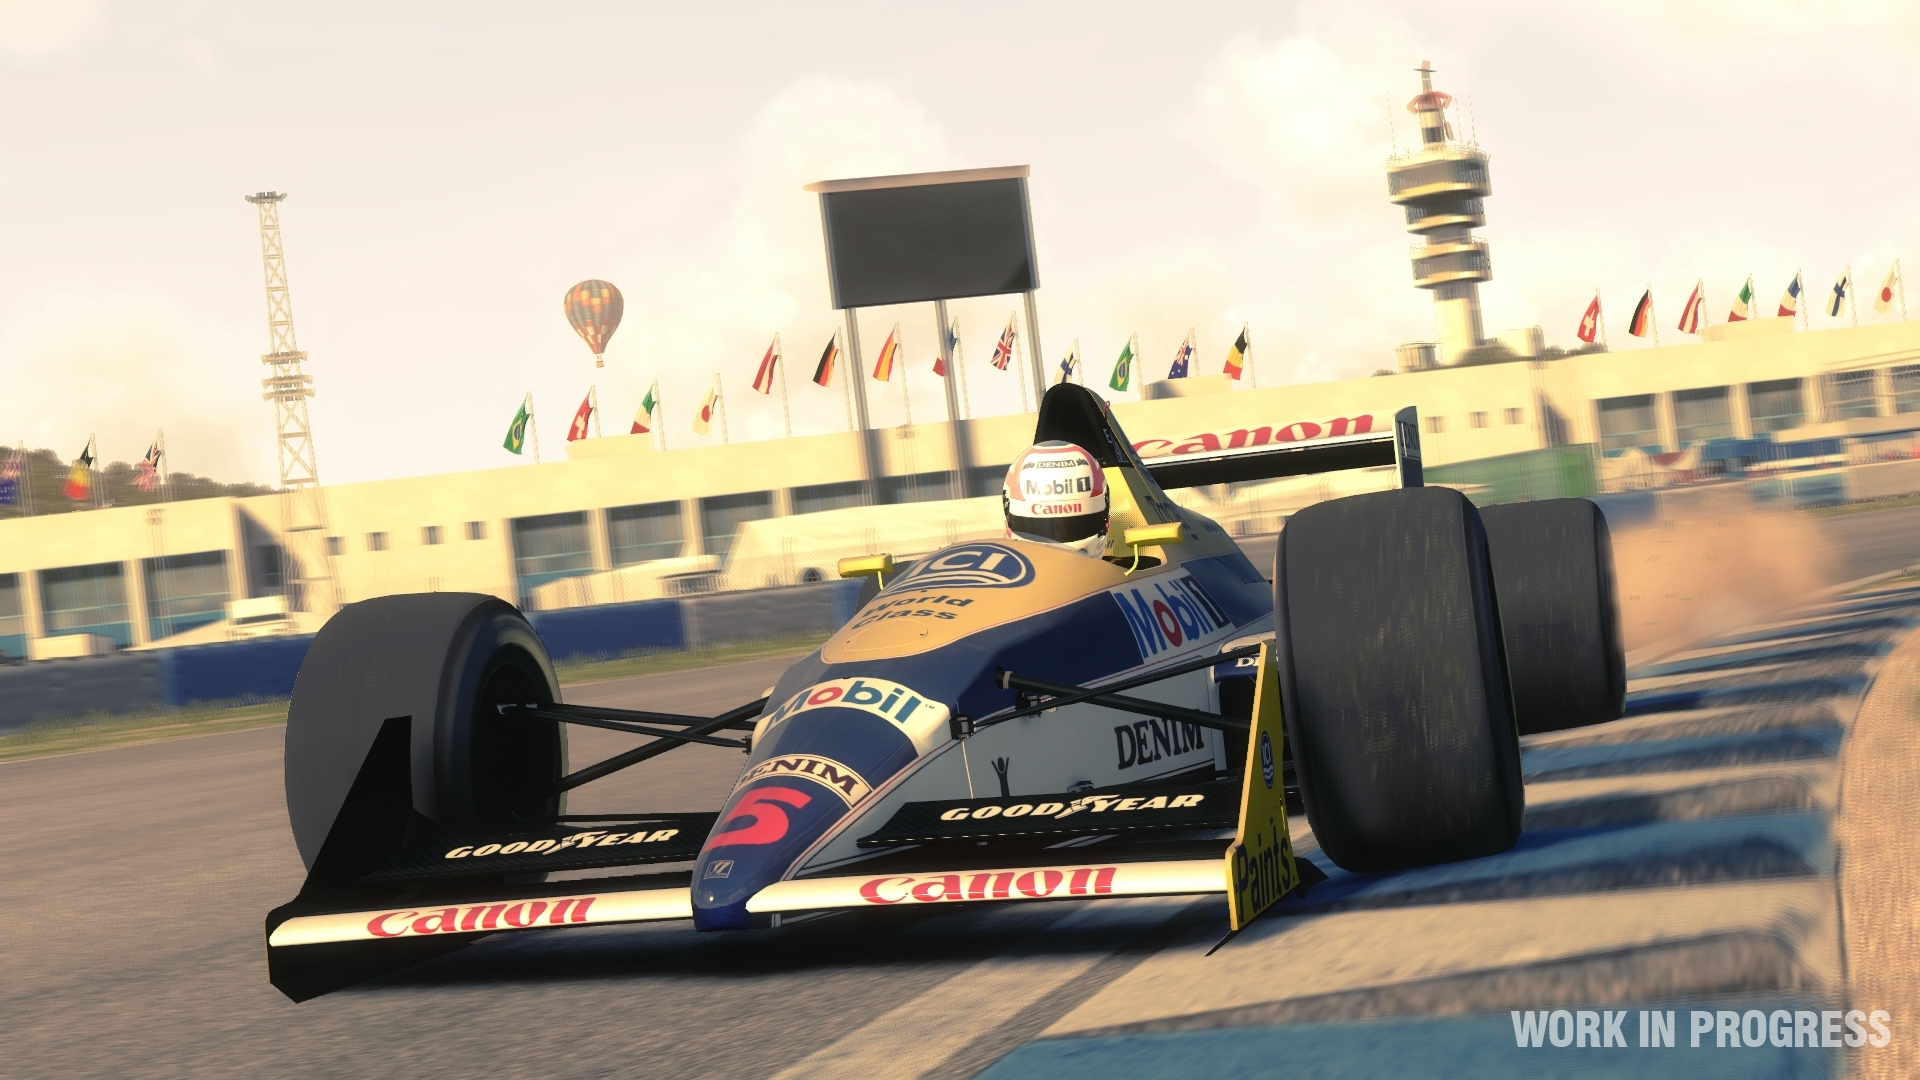 F1 2013 exclusive Classic Mode hands-on gameplay videos